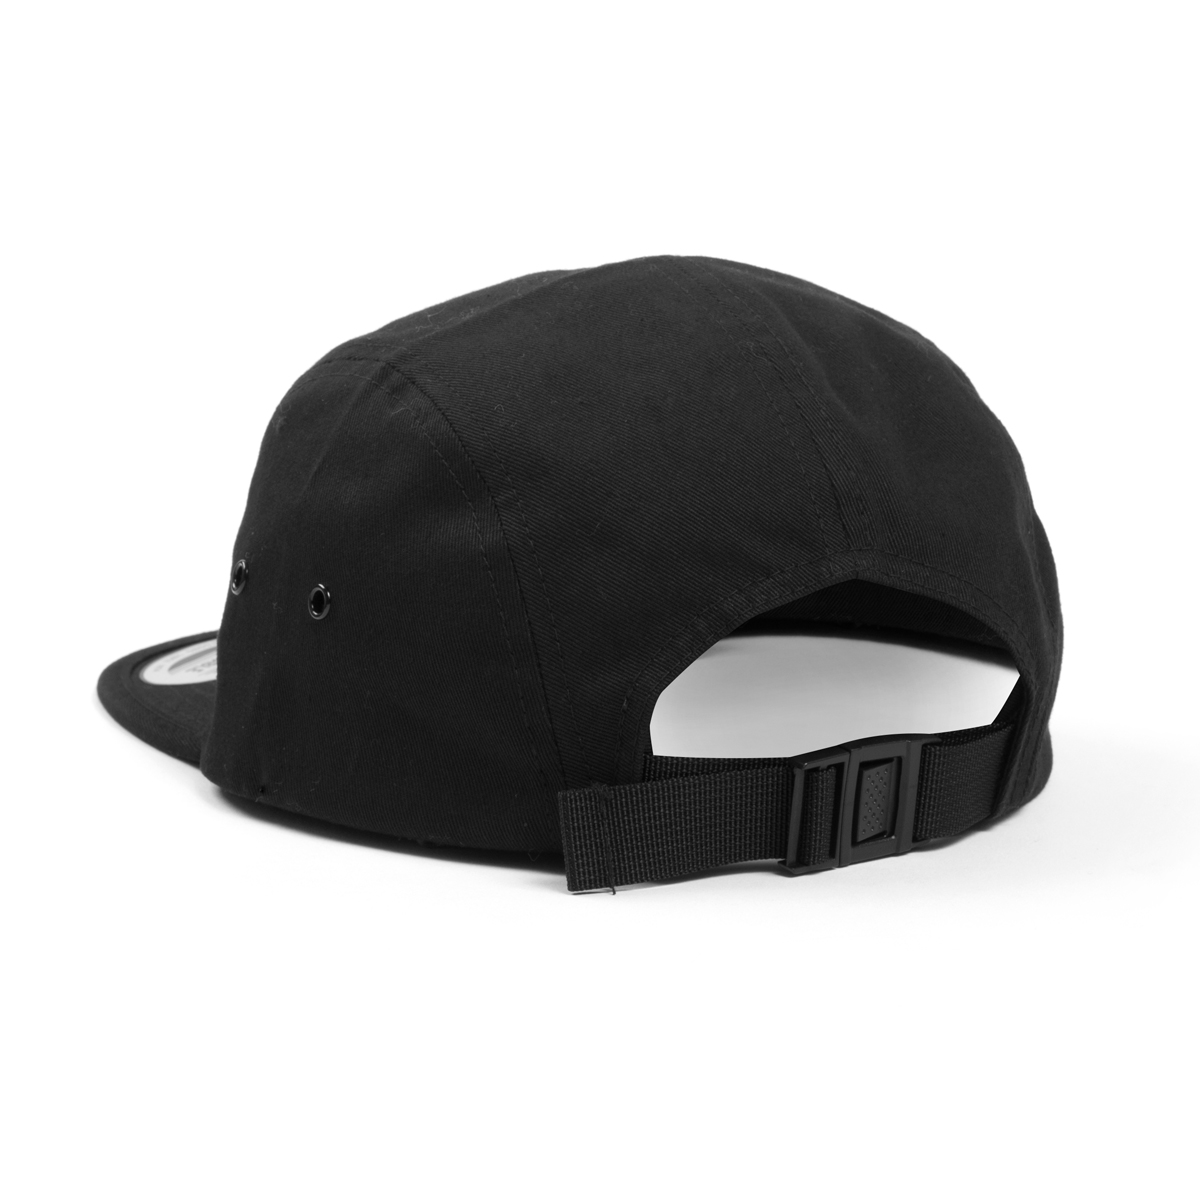 Tiësto 5-Panel Camper Hat